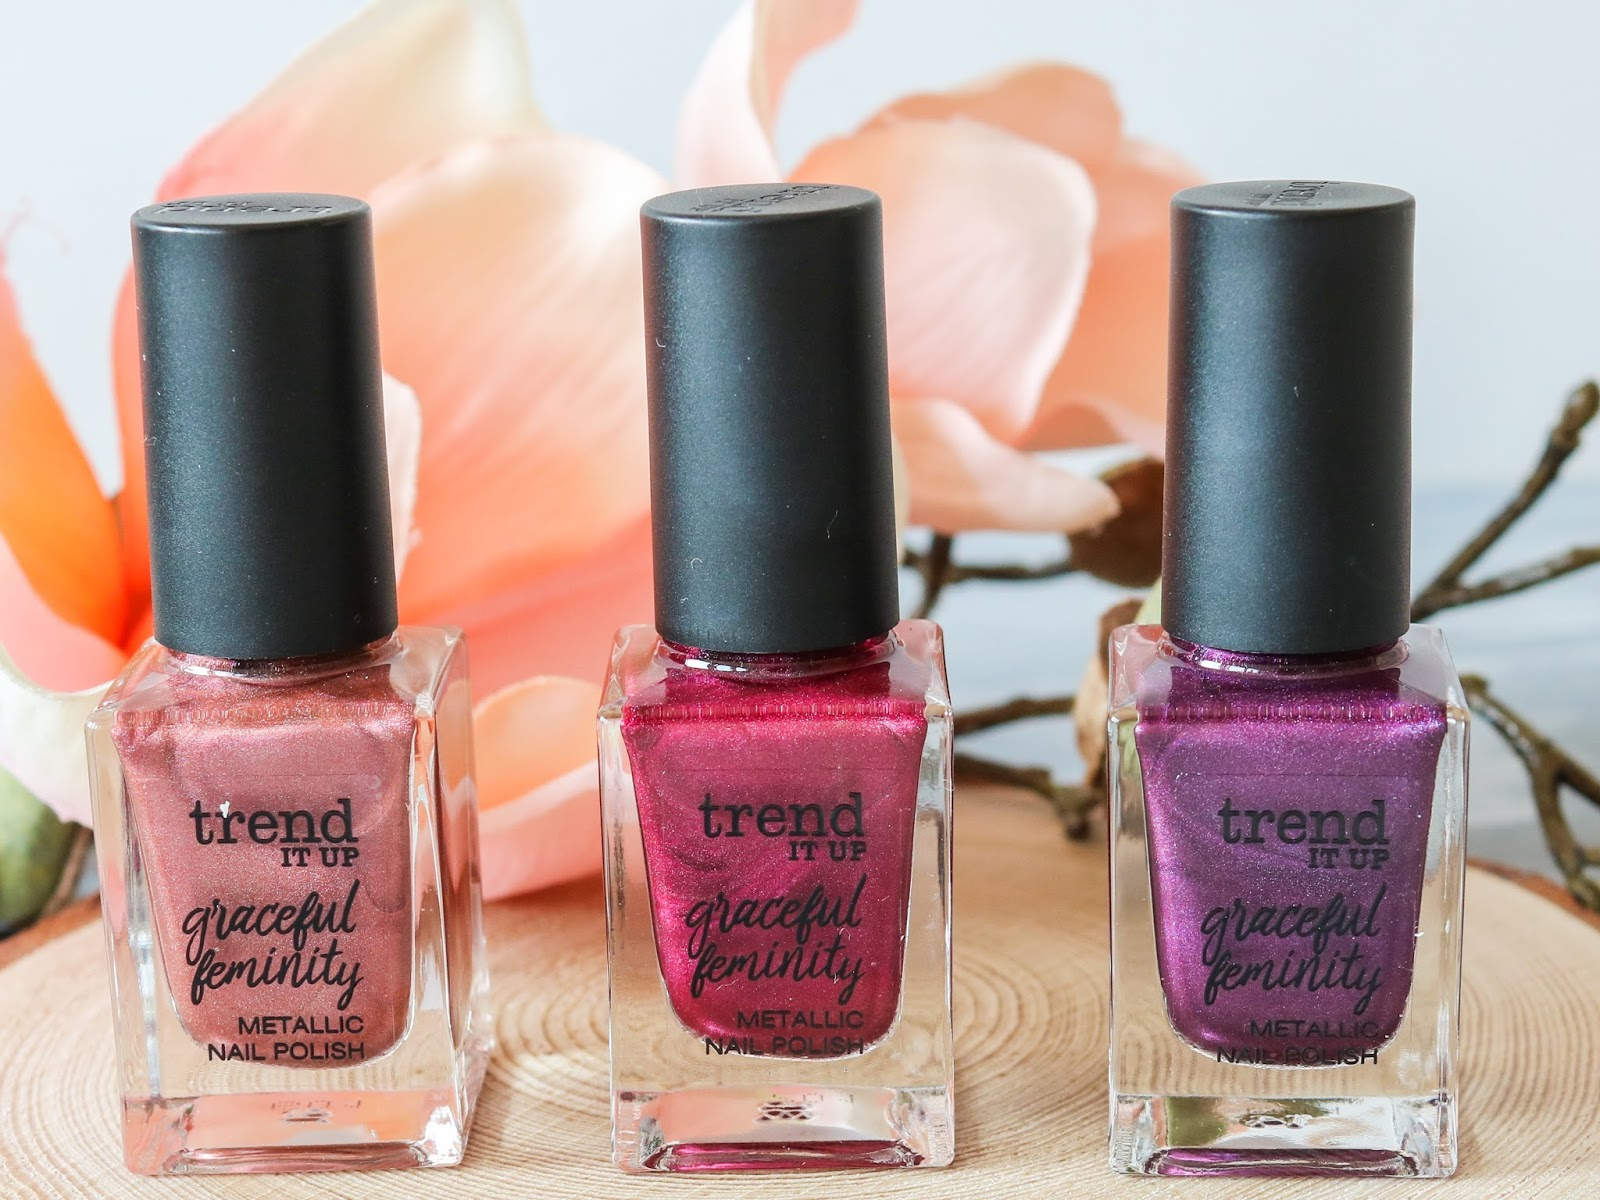 Review Trend It Up Le Graceful Feminity Metallic Nail Polish